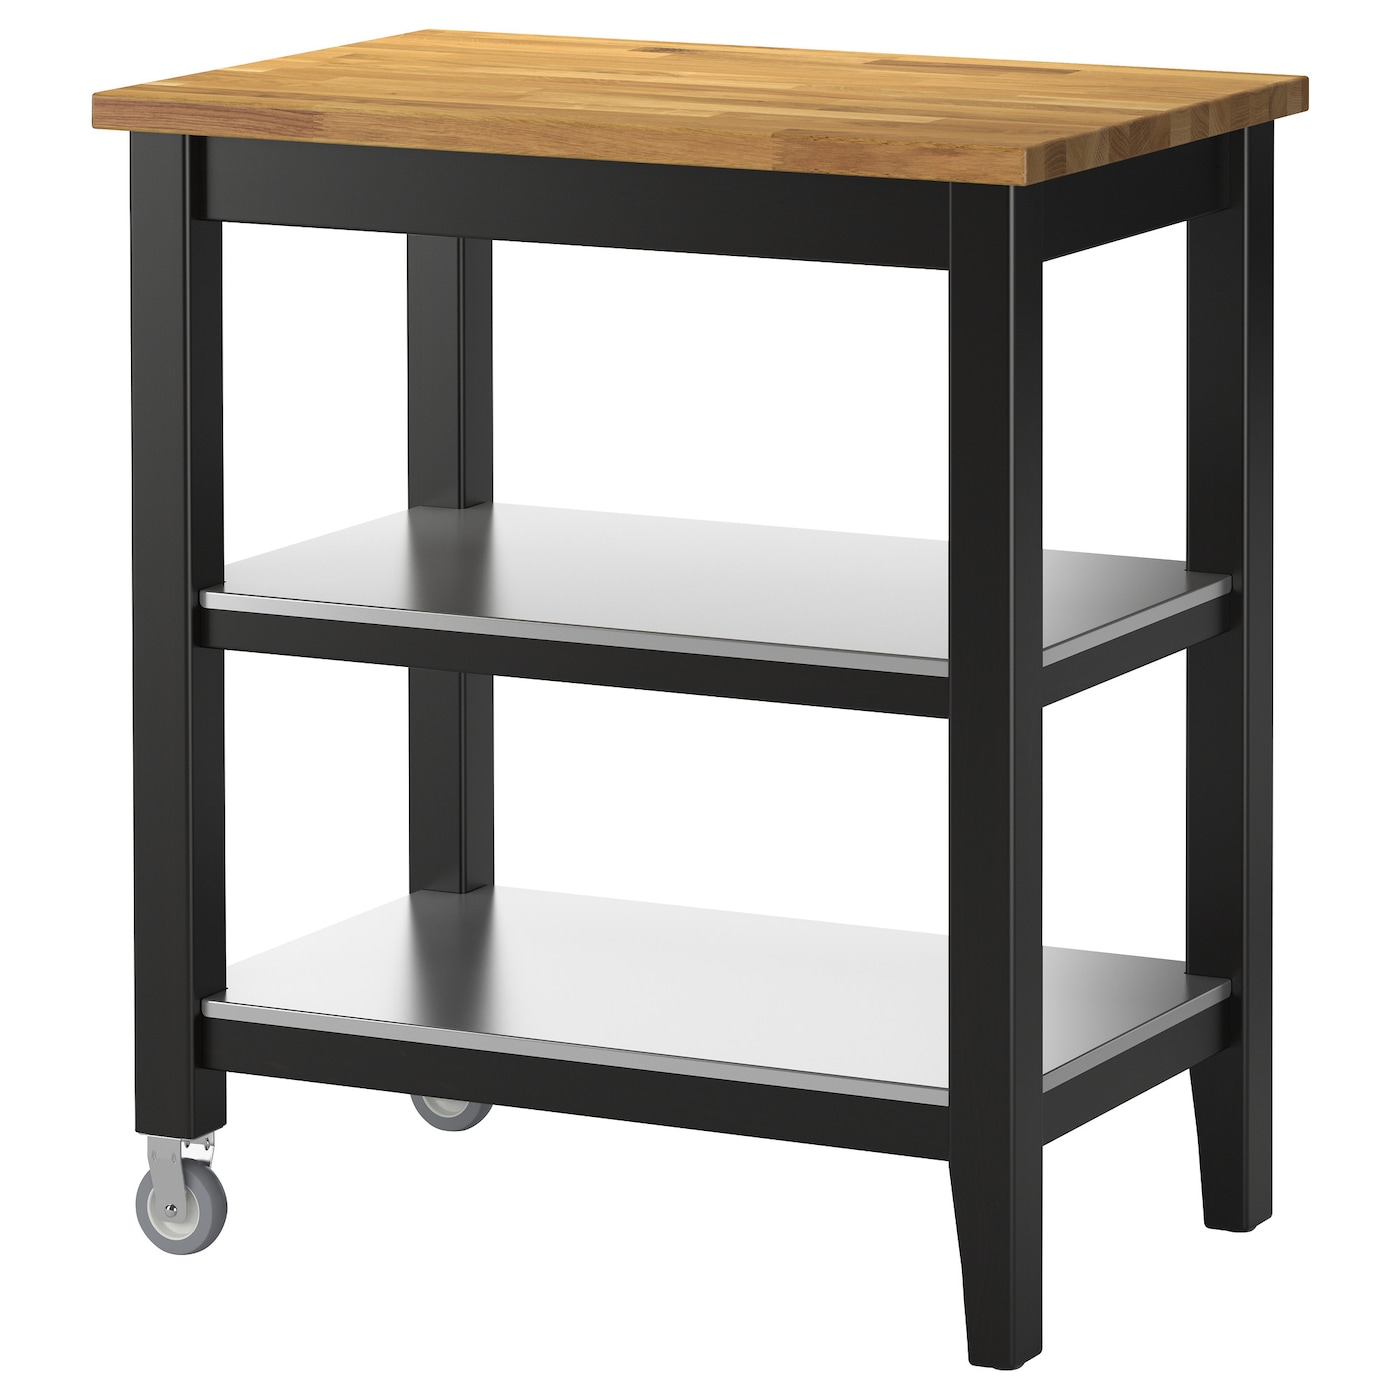 Merveilleux IKEA STENSTORP Kitchen Trolley Gives You Extra Storage In Your Kitchen.